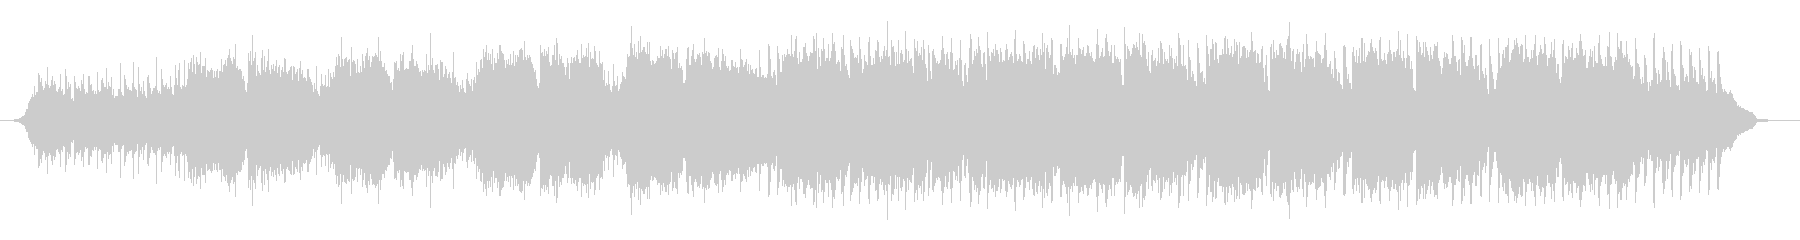 Bright and colorful BGM of violin and acoustic guitar's unreproduced waveform